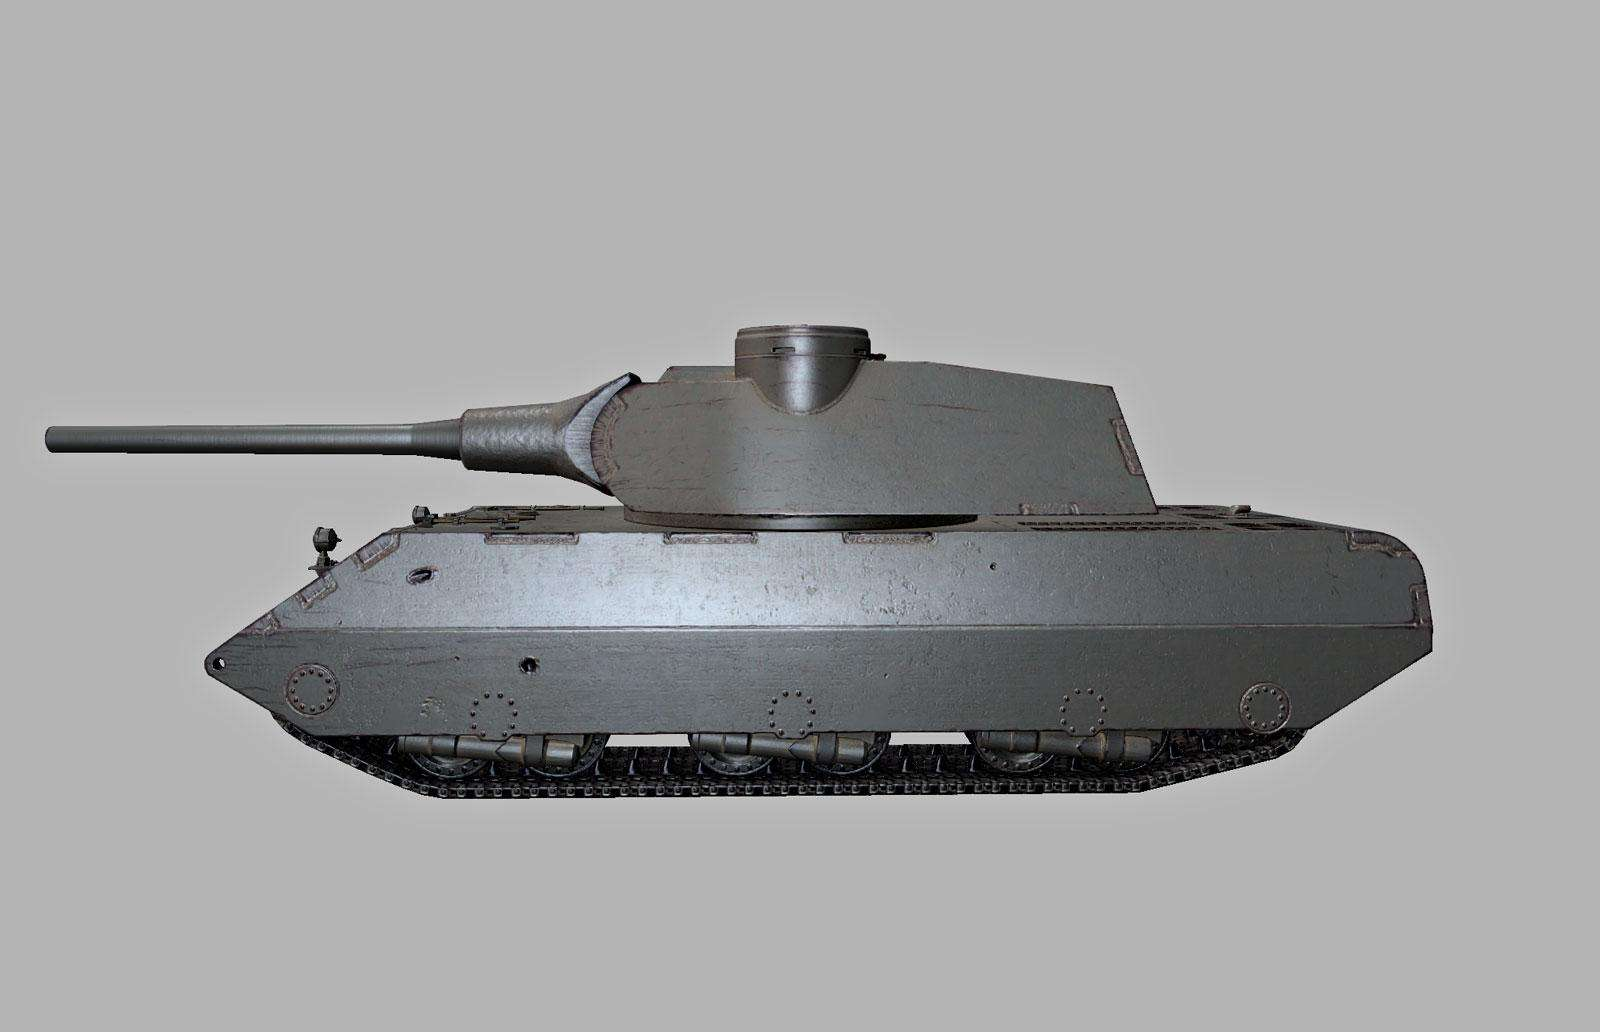 Wow i saw a vk 10001 p general discussion official forum afbeeldingsresultaat malvernweather Images